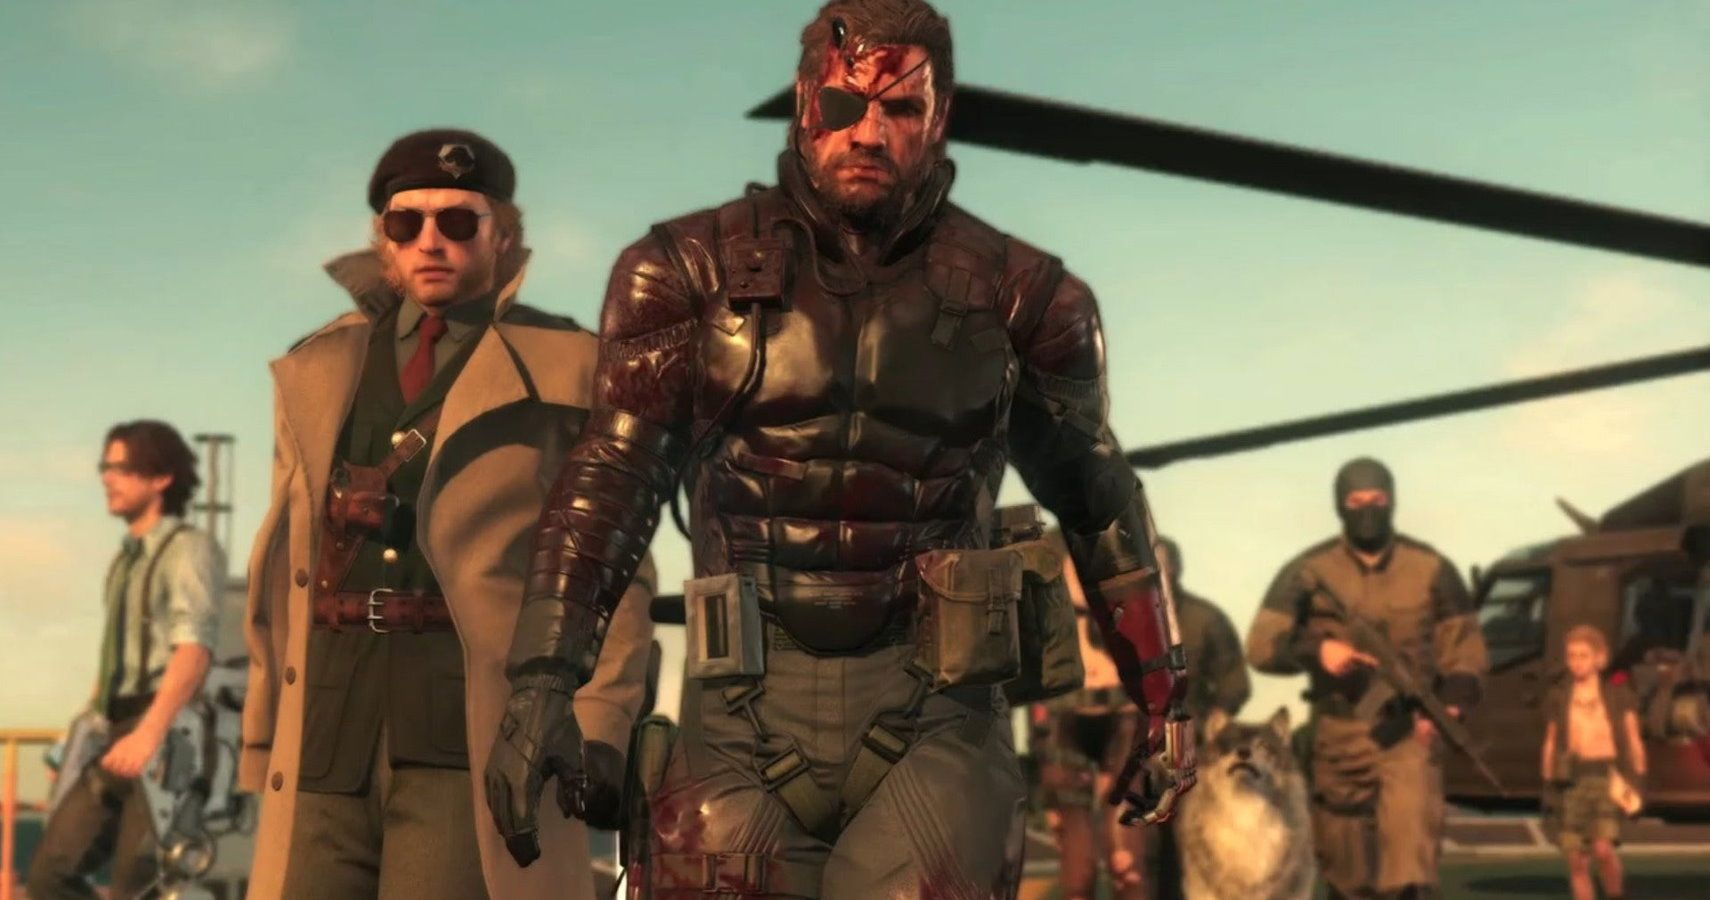 Player Cheated To Create Nuclear Disarmament In Metal Gear Solid V Says Konami This pain is ours and no one else's: create nuclear disarmament